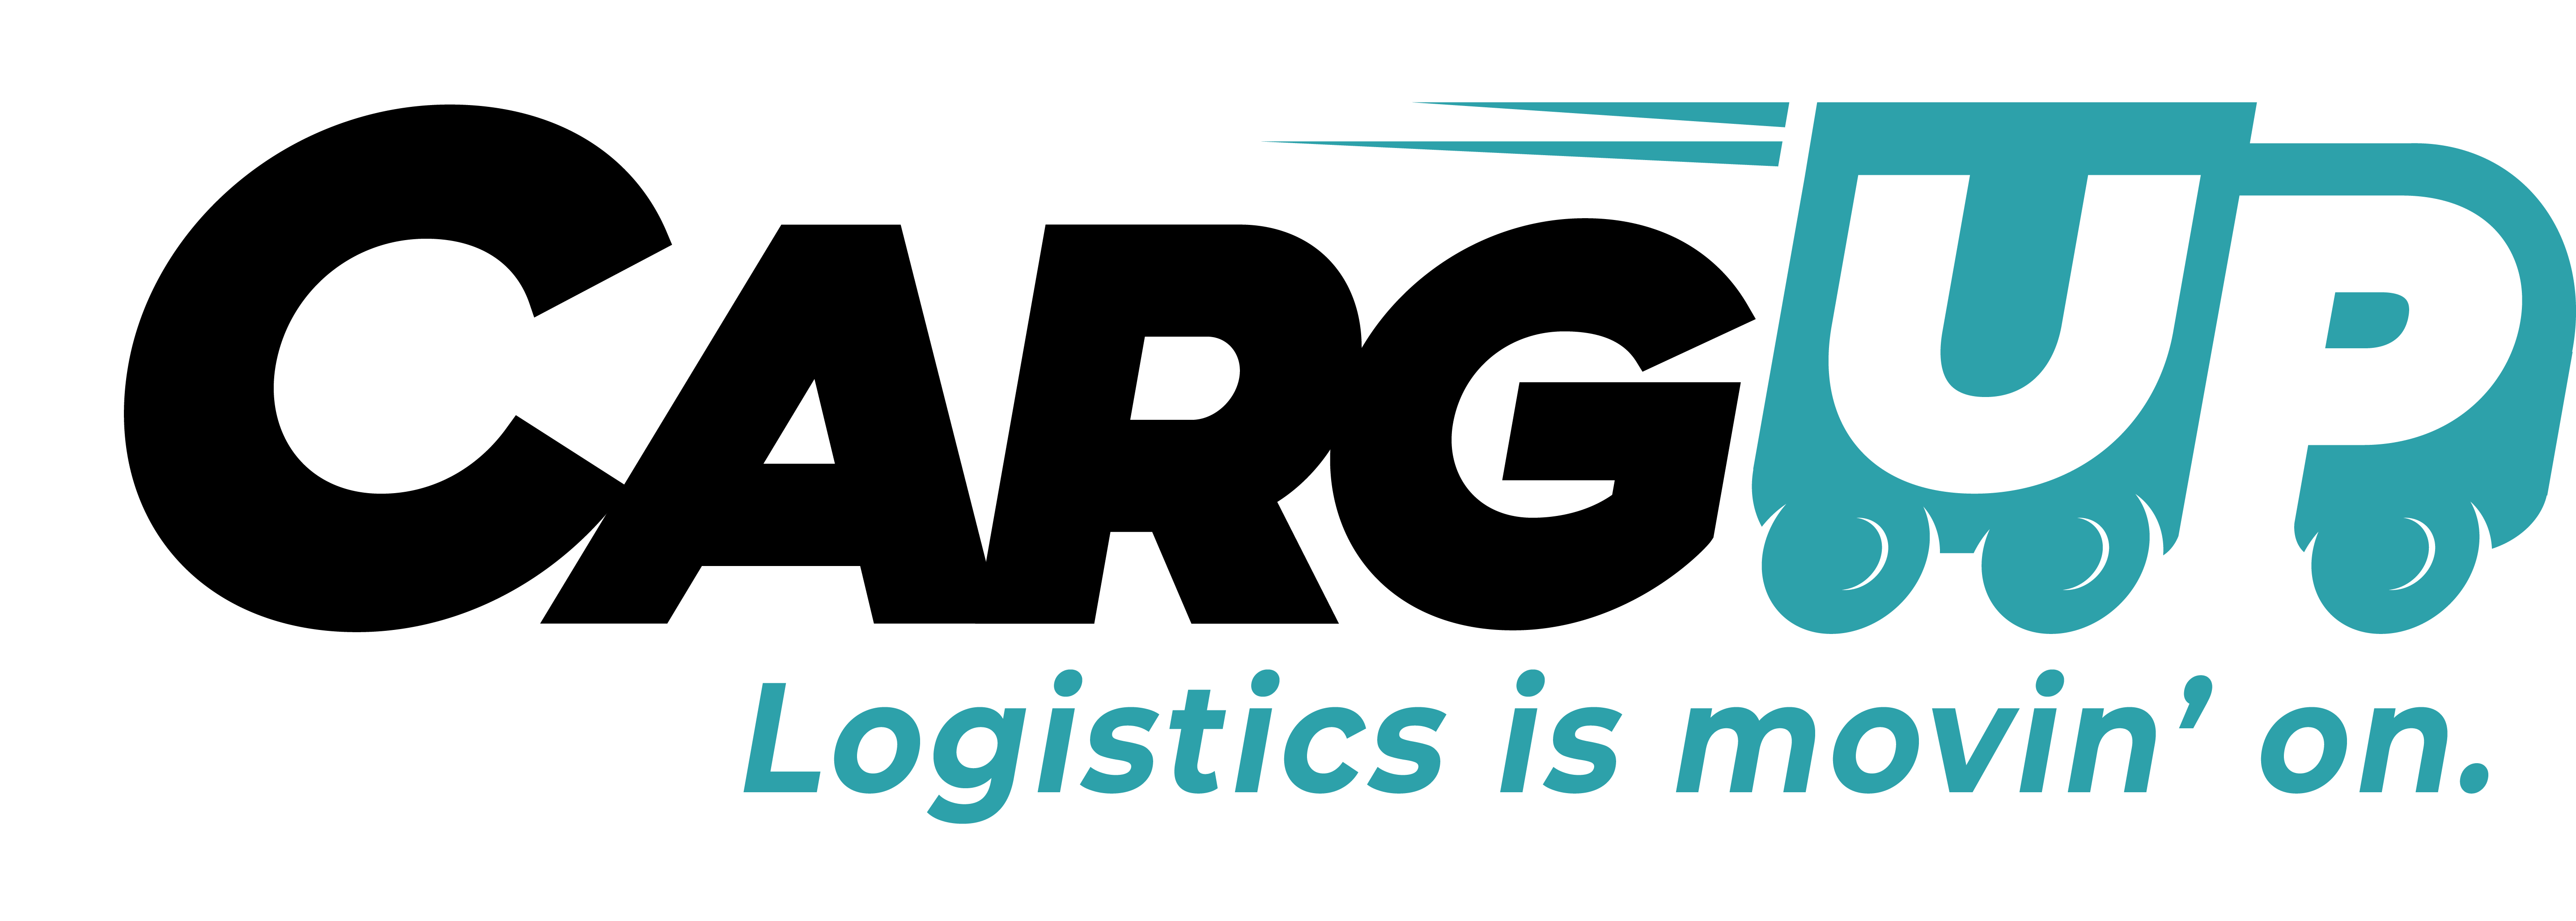 logo-cargup-logisics-is-moving-on